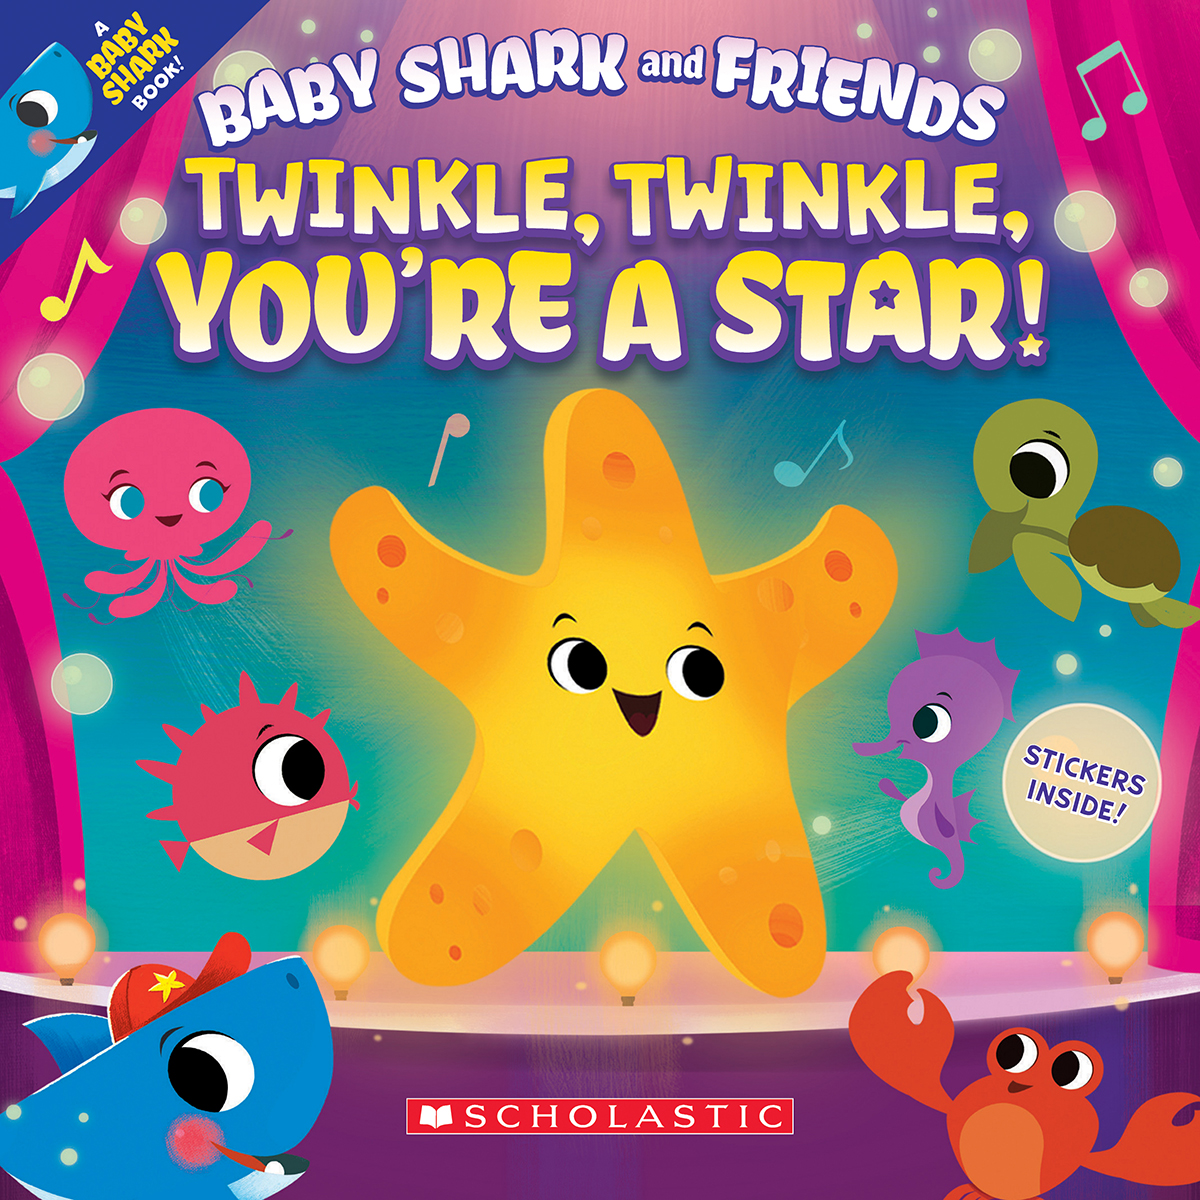 Baby Shark and Friends: Twinkle, Twinkle, You're a Star!